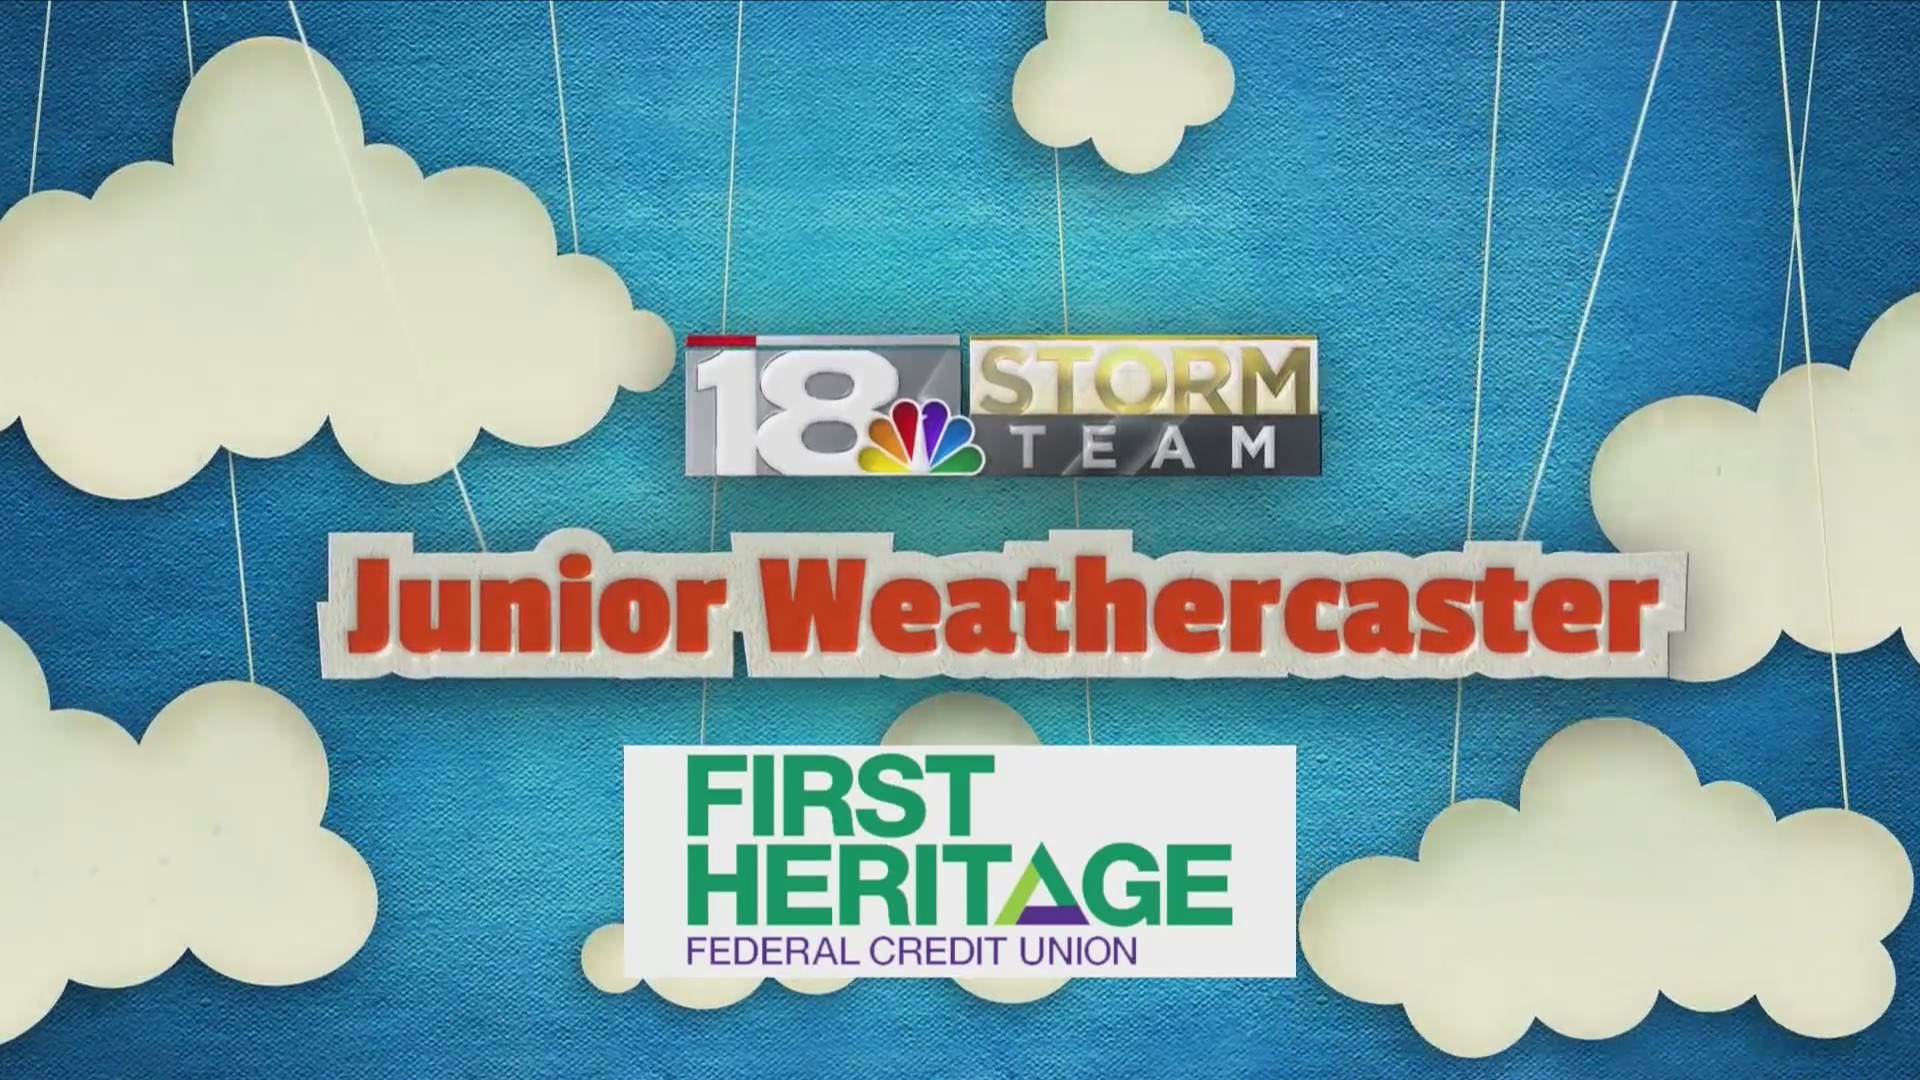 February's Junior Weathercaster: Donovan